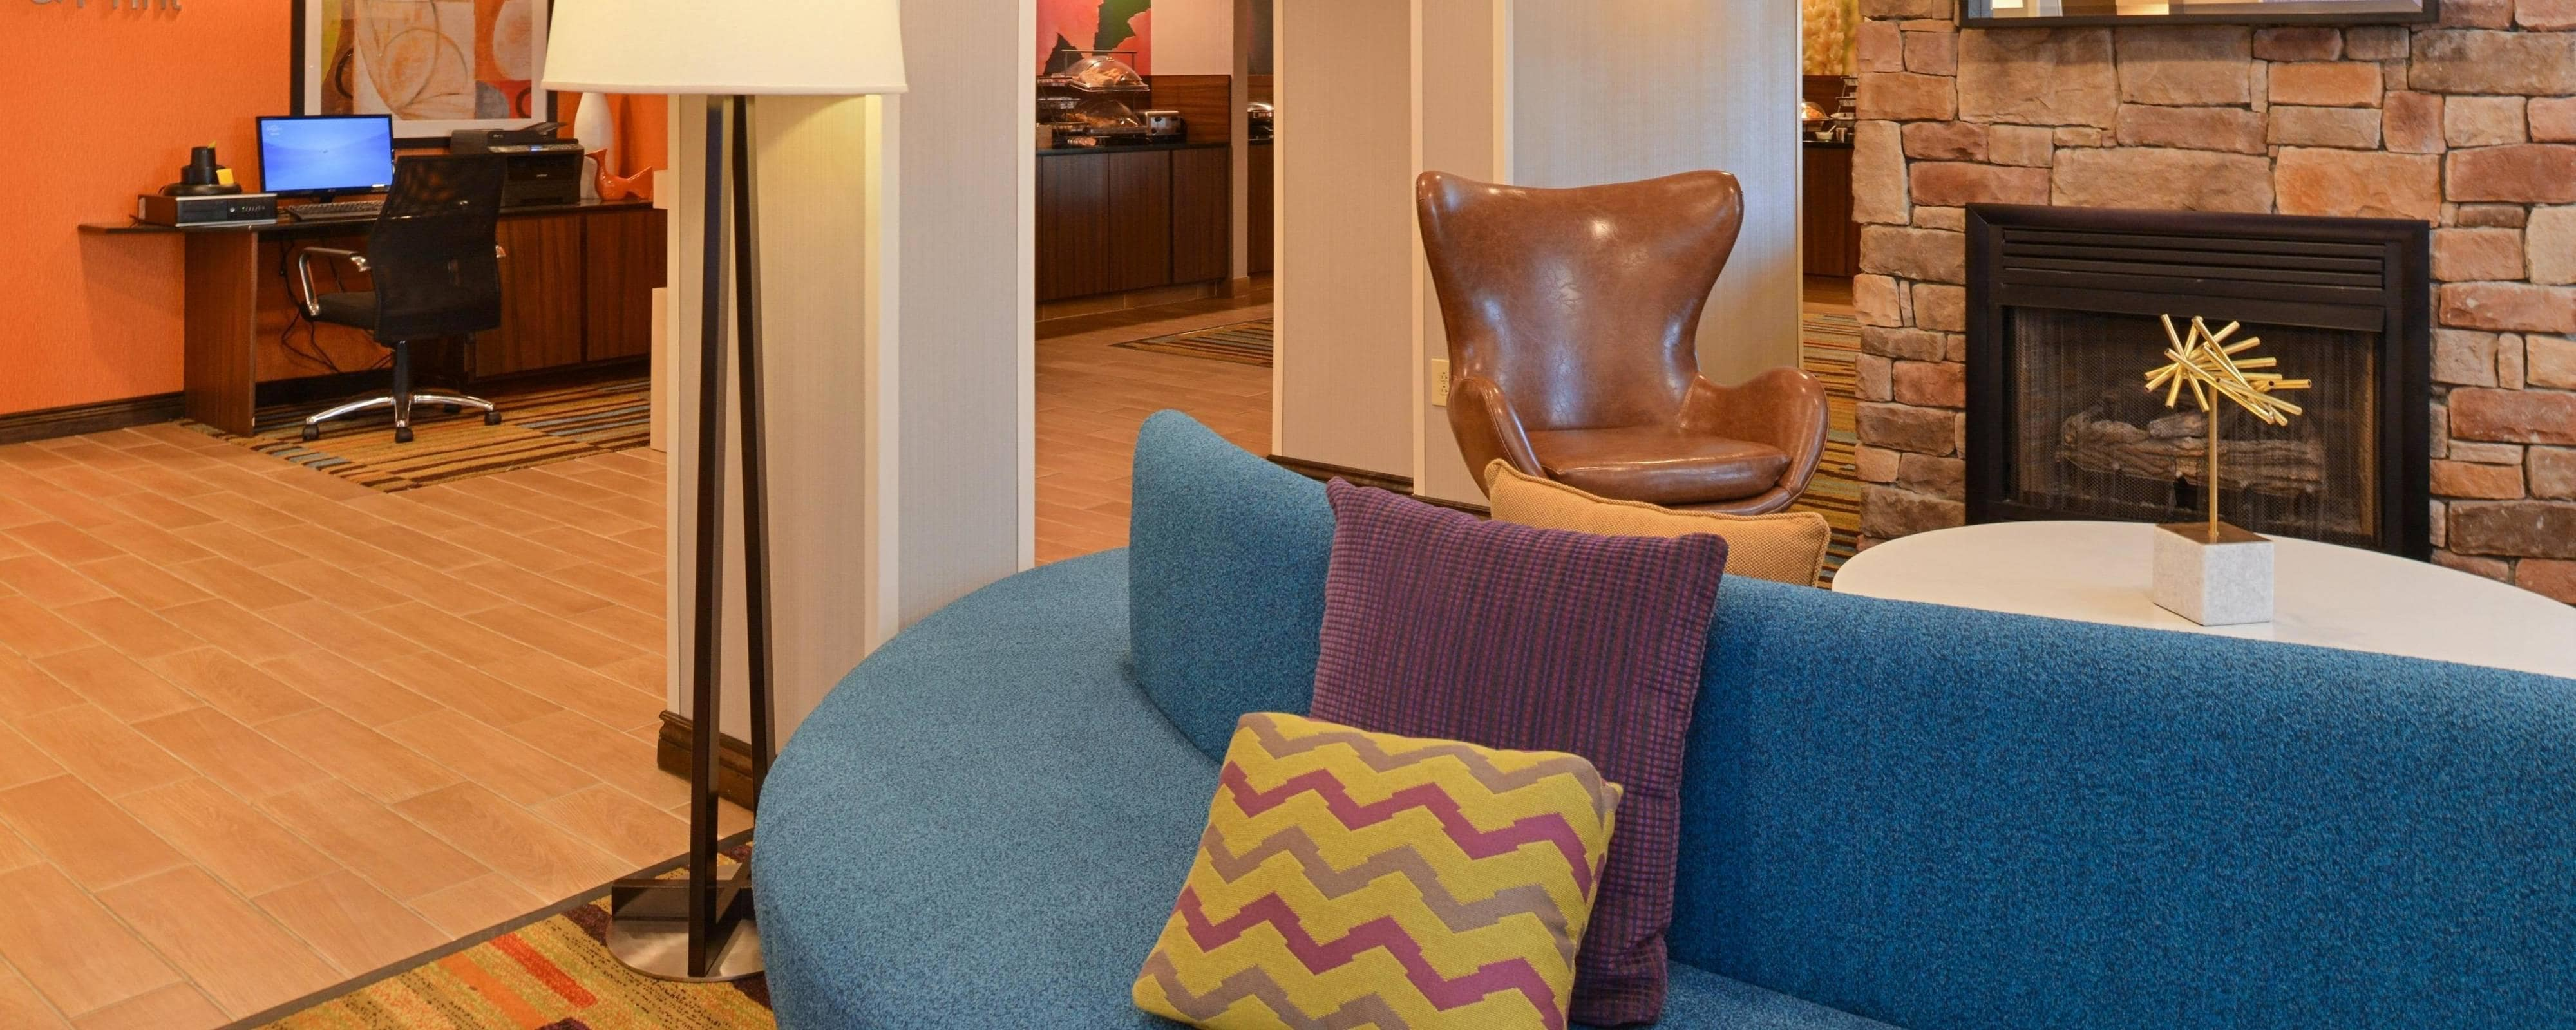 Lobby del Fairfield Inn & Suites en Georgetown